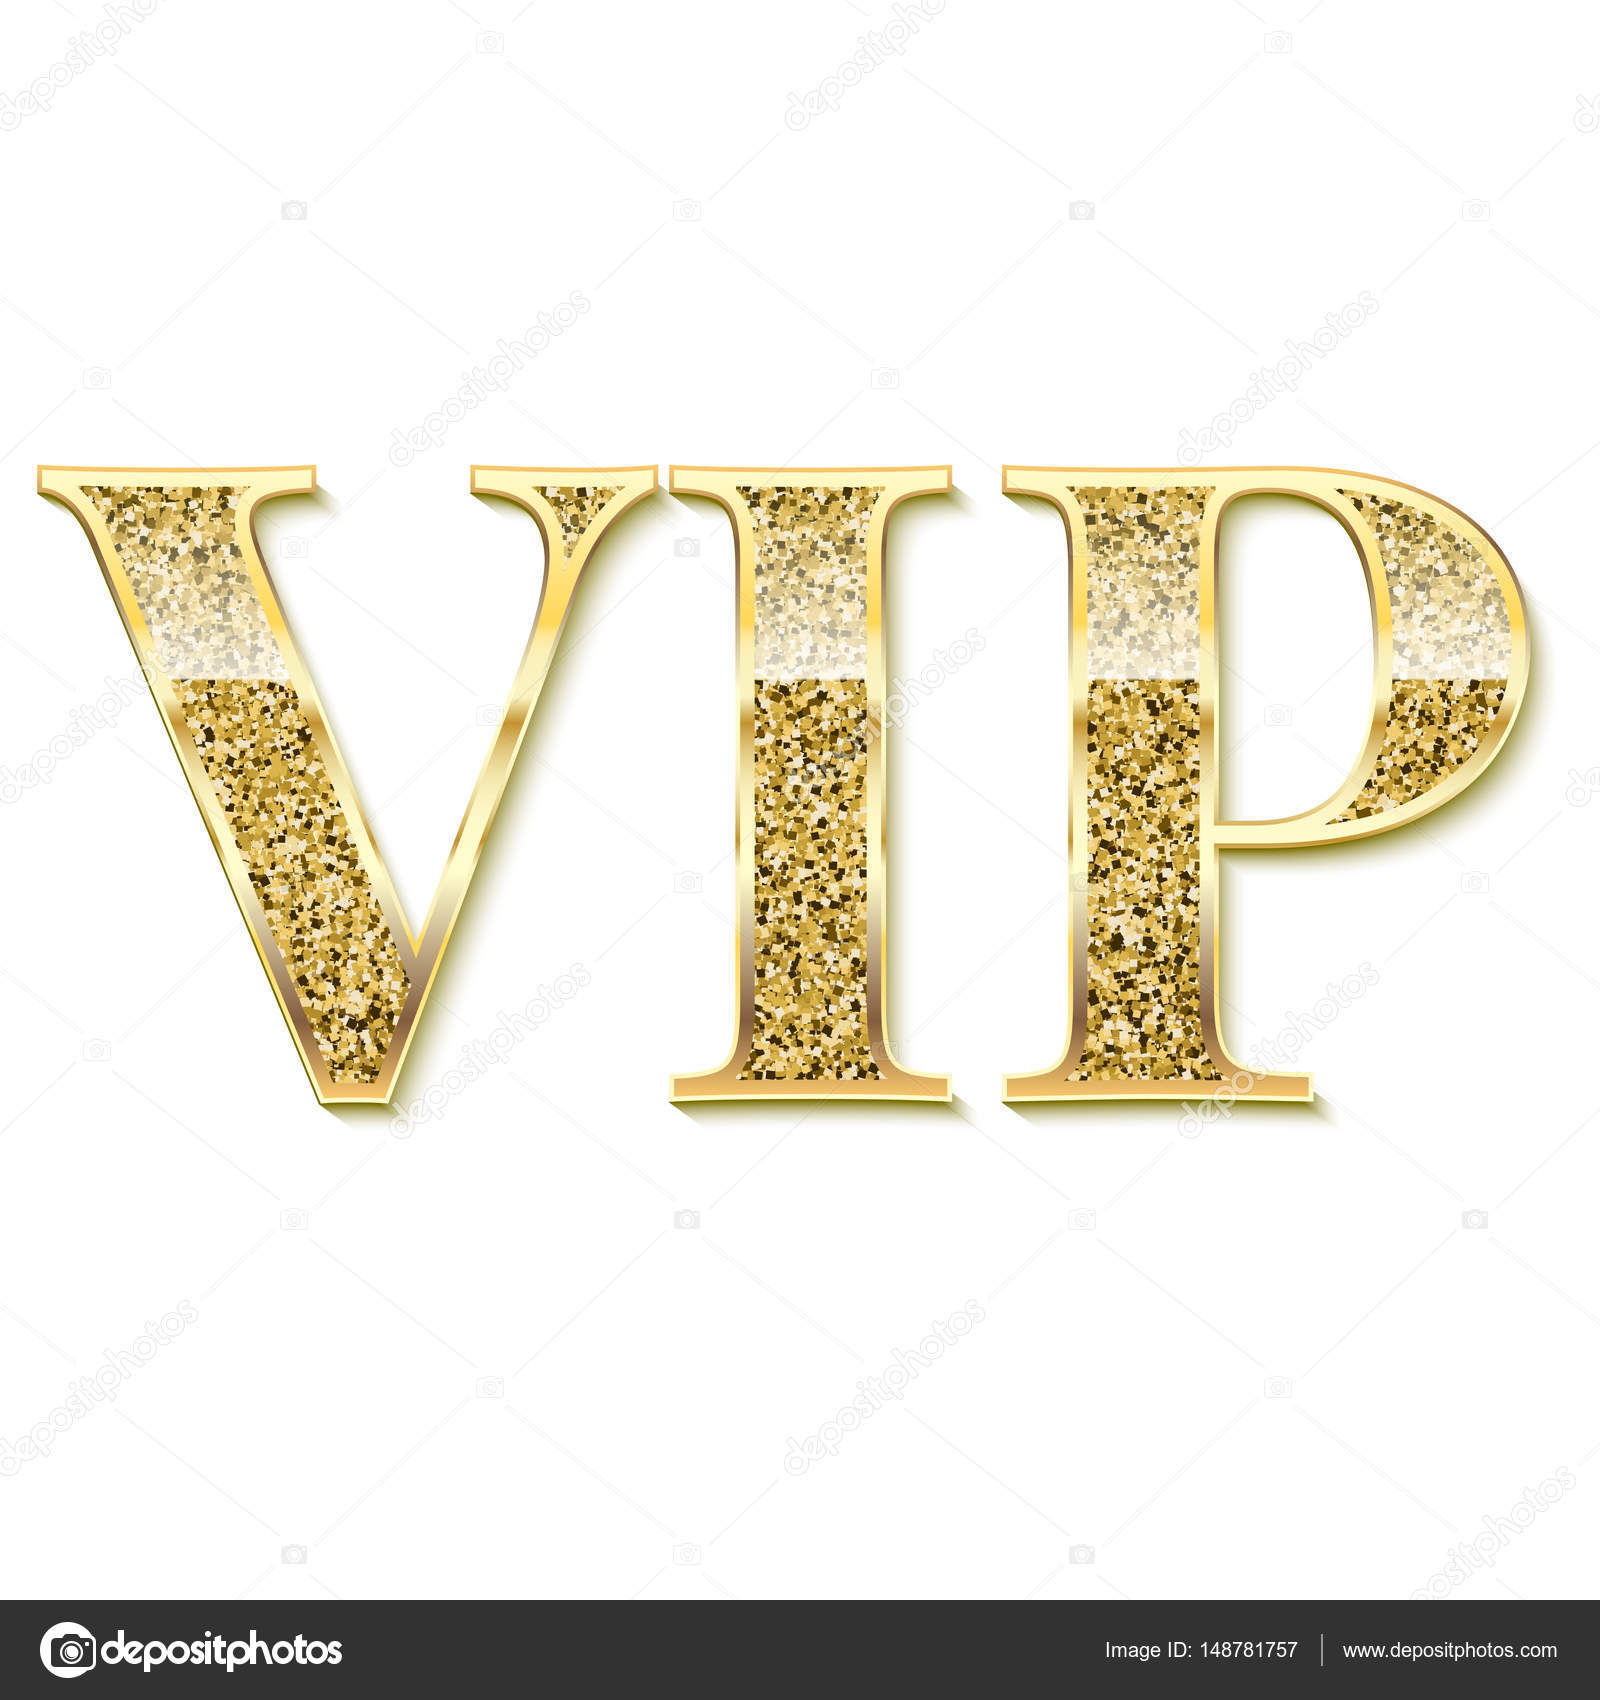 Golden Symbol Of Exclusivity The Label Vip With Glitter Stock